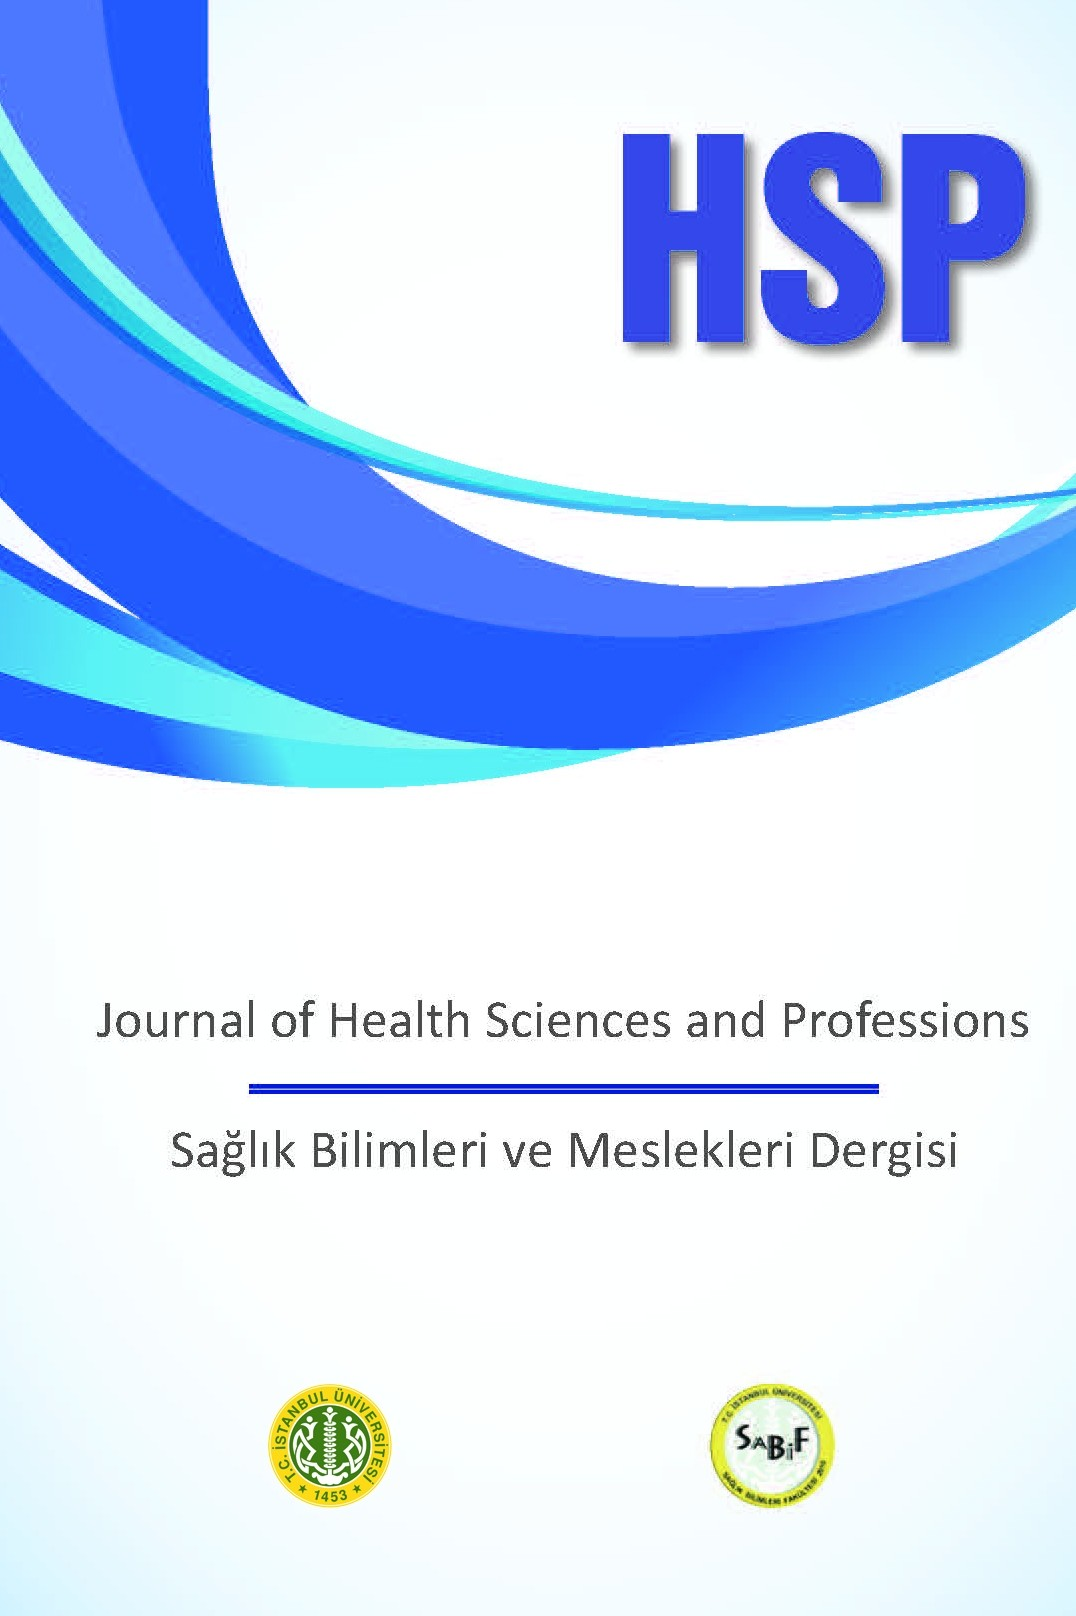 Journal of Health Science and Profession